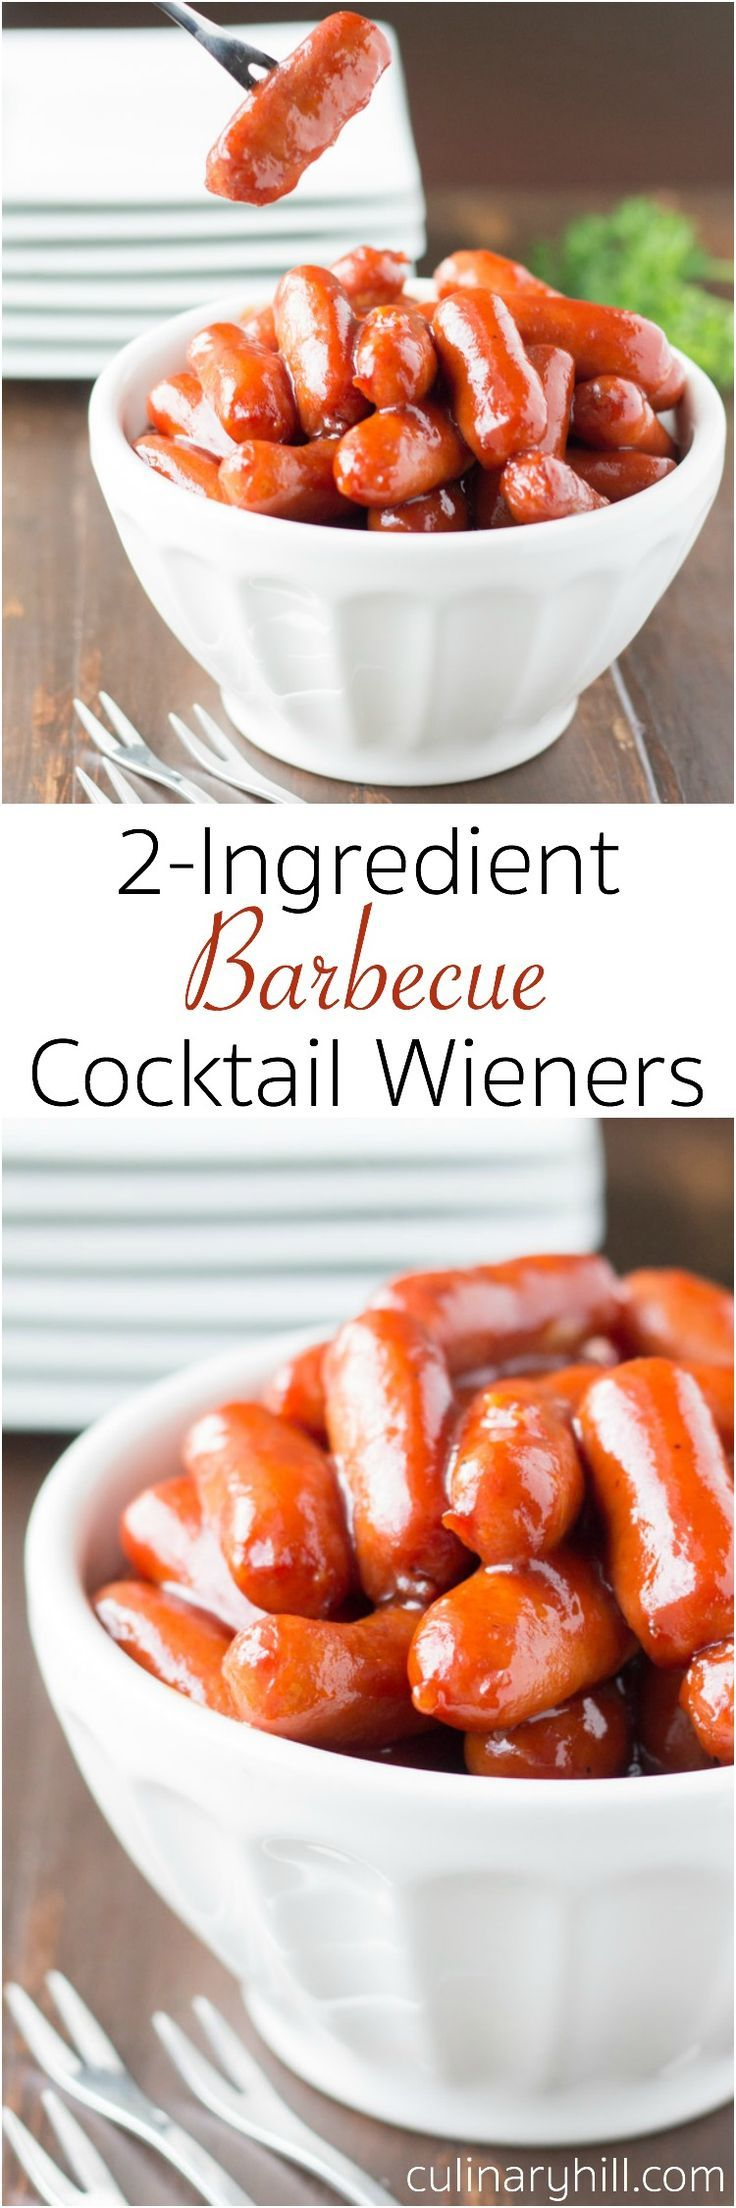 2-Ingredient Barbecue Little Smokies are the easiest appetizer you will ever make, whether you make them on the stove top or in a crock pot. Sweet and smokey cocktail wieners in delicious barbecue sauce make a great snack for Game Day or any party!